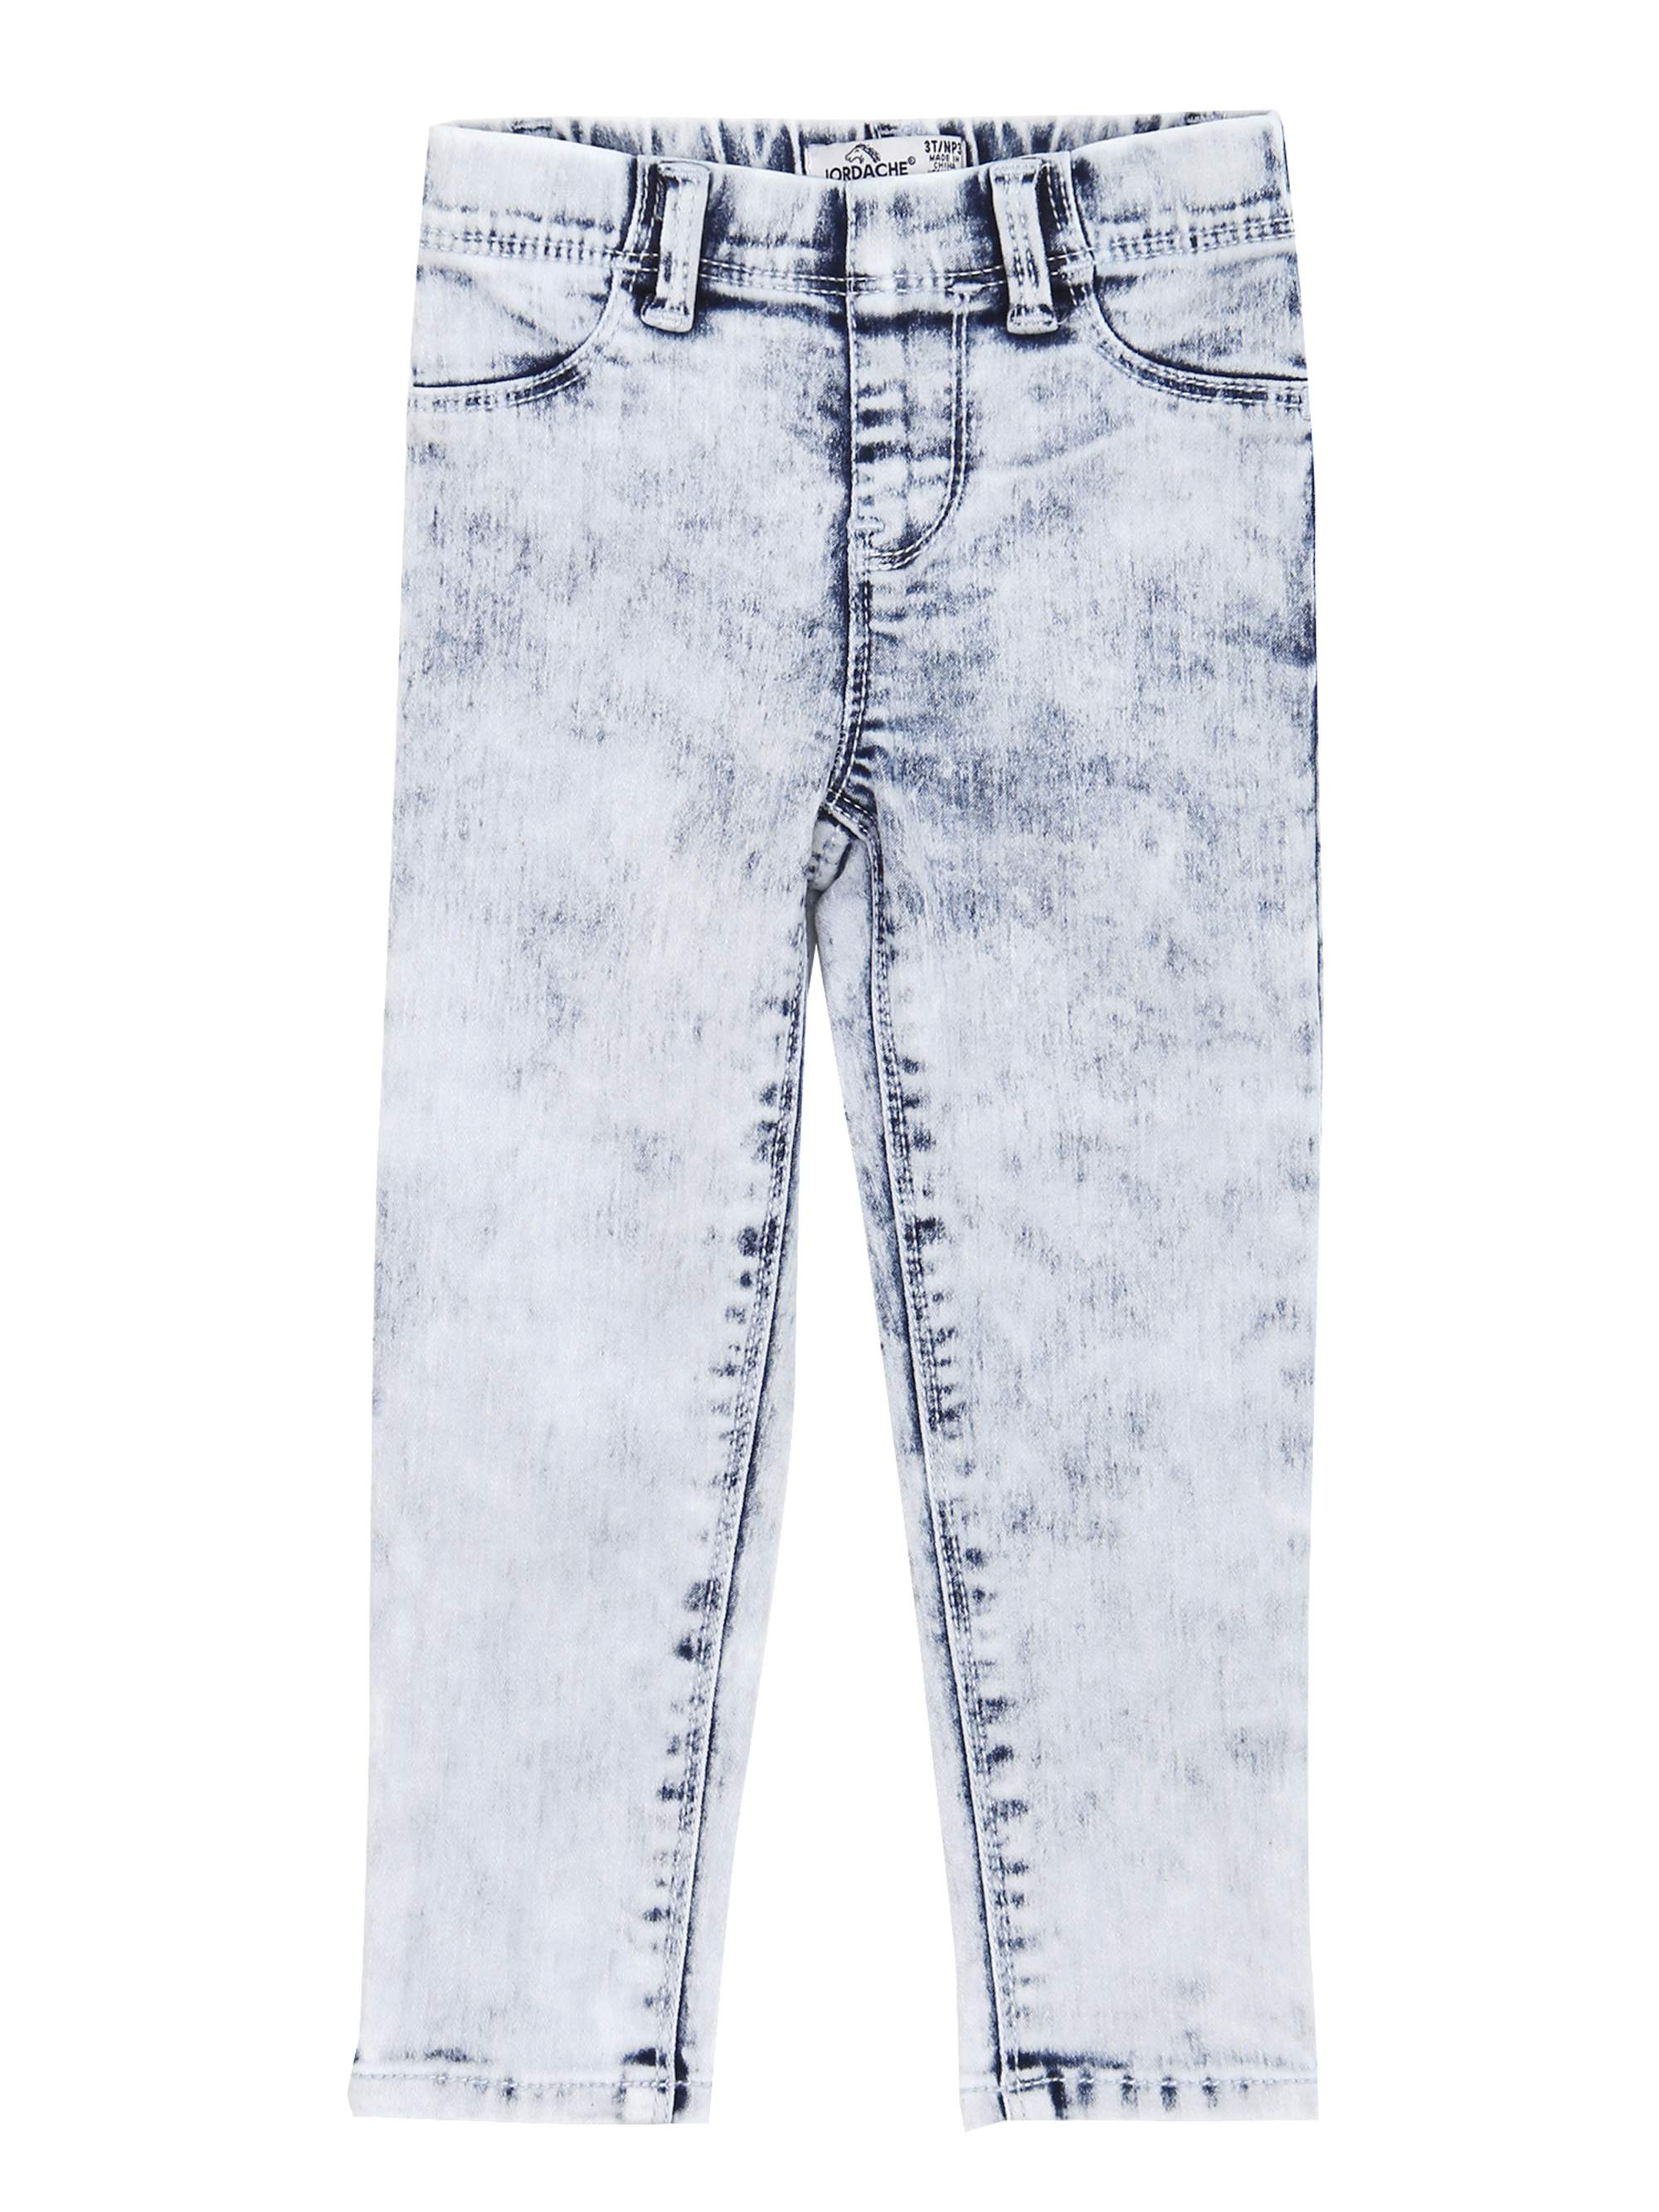 Jeggings Pants Toddlers Girls 2T 3T